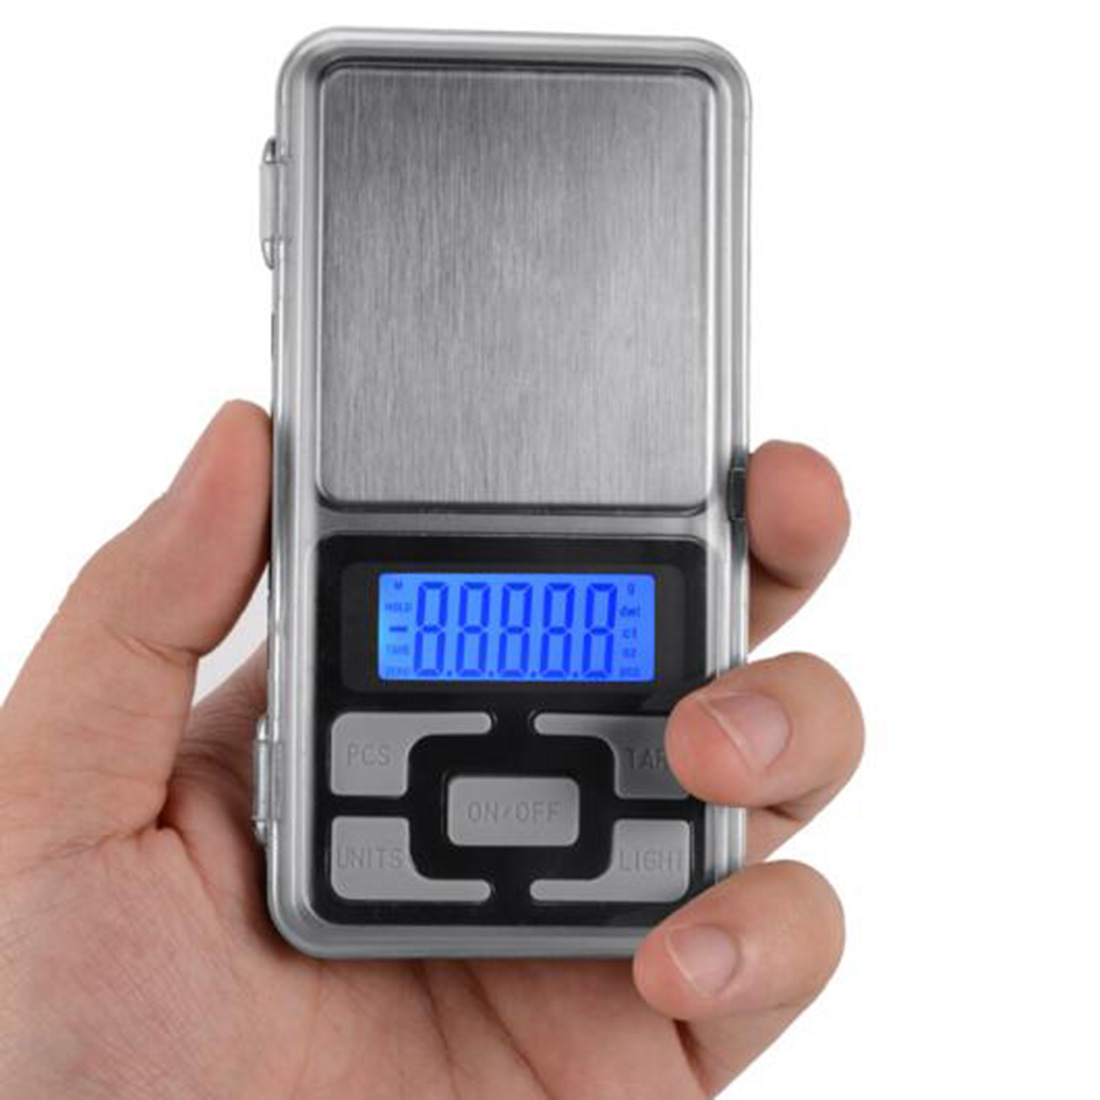 500g x 0.1g Mini Pocket Digital Scale for Gold Sterling Silver Jewelry Scales 0.1 Display Units Balance Gram Electronic Scales new arrival 500g 0 1g lcd digital gold balance gram pocket